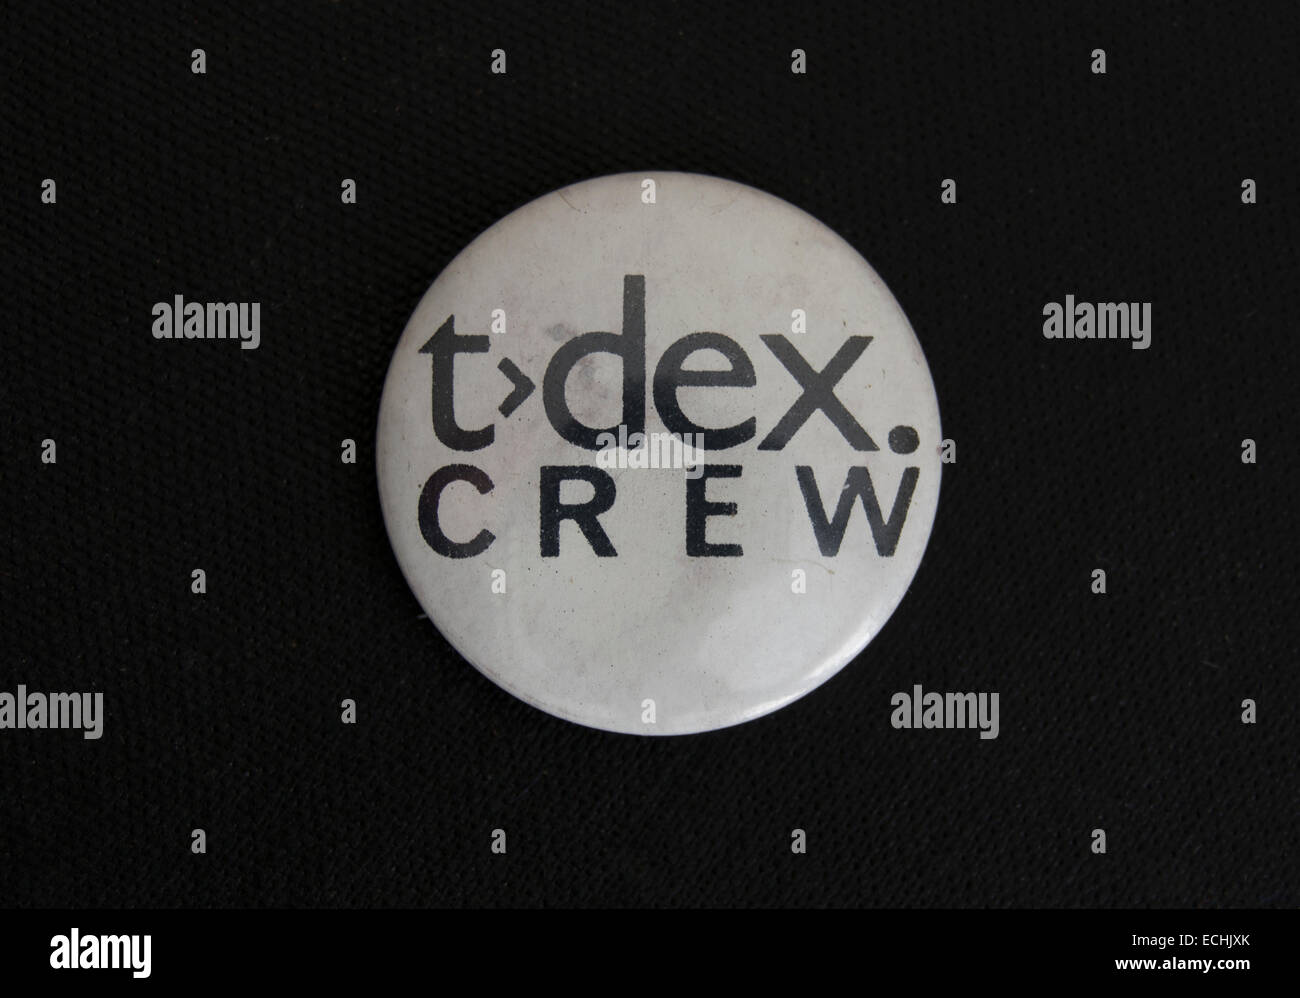 1980s lapel badge issued to the road crew of rock band the teardrop explodes - Stock Image